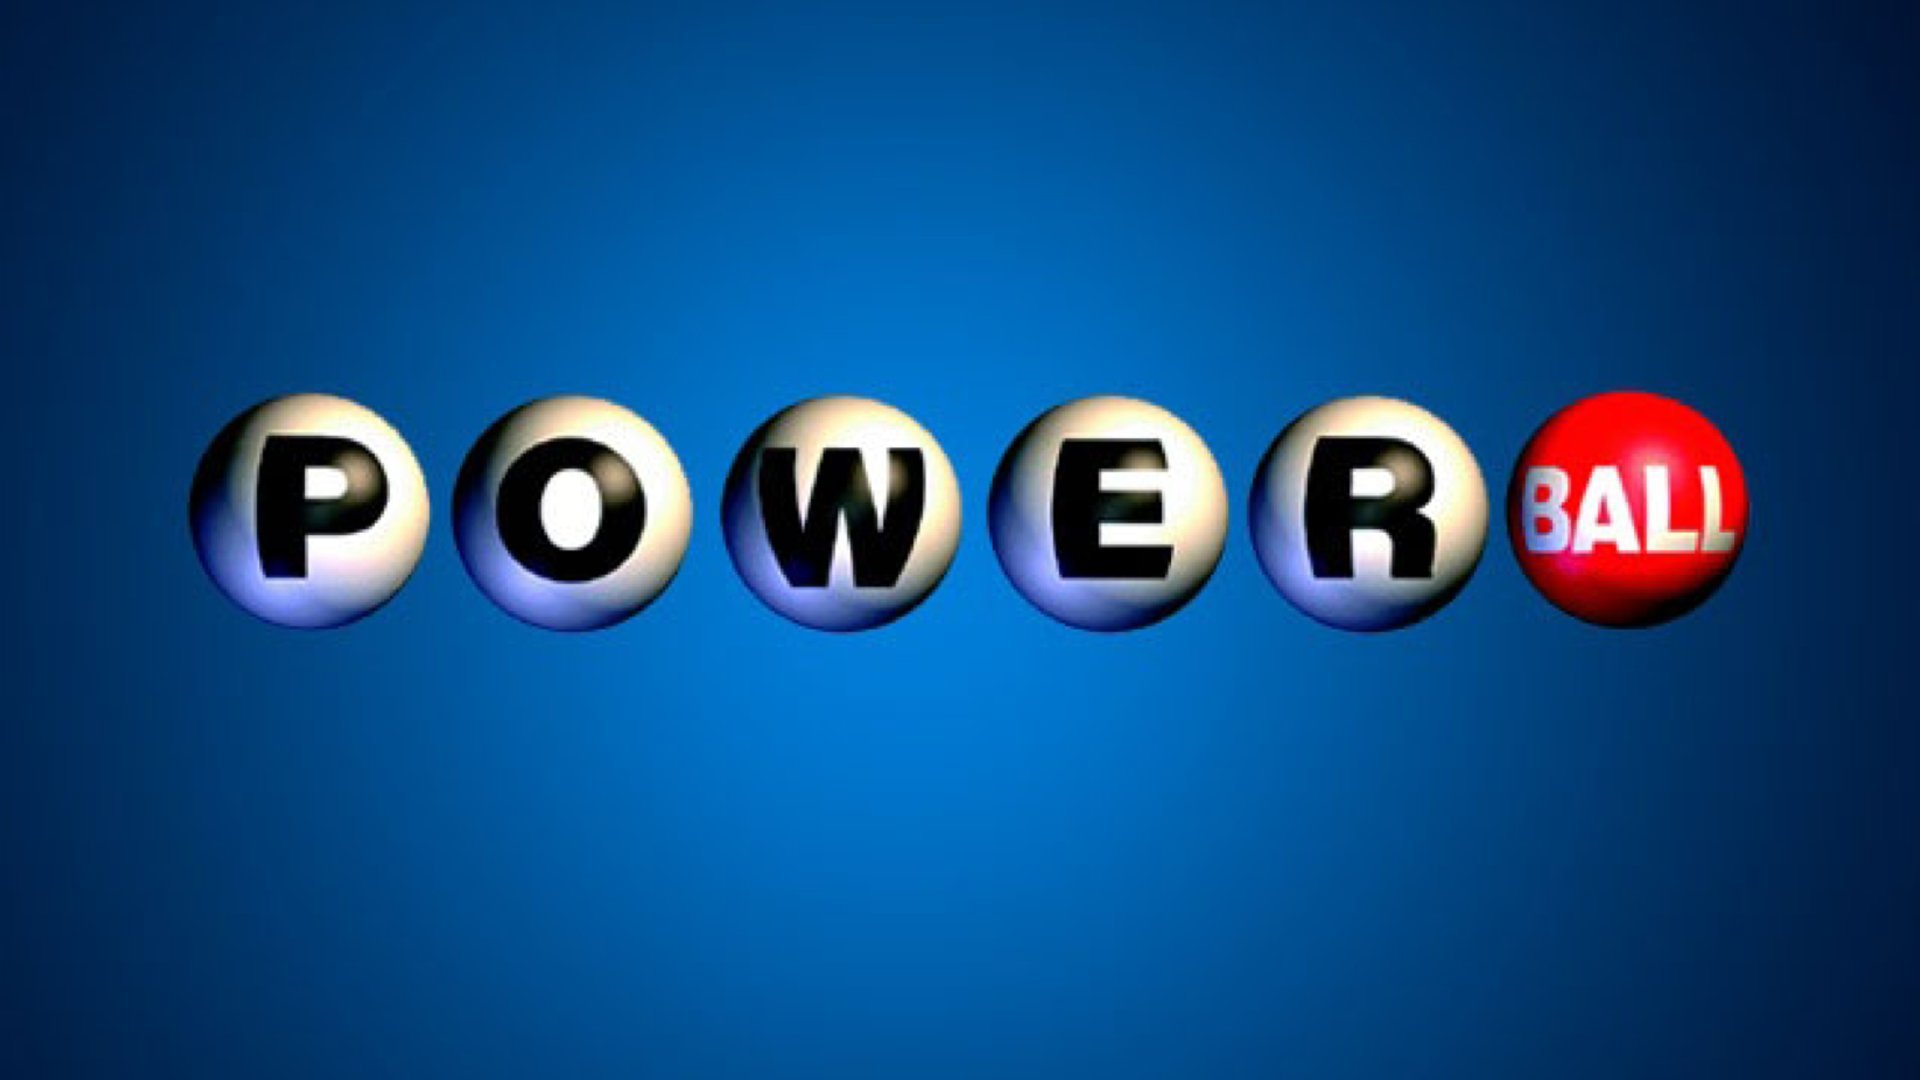 powerball january 13 2016 photo - 1